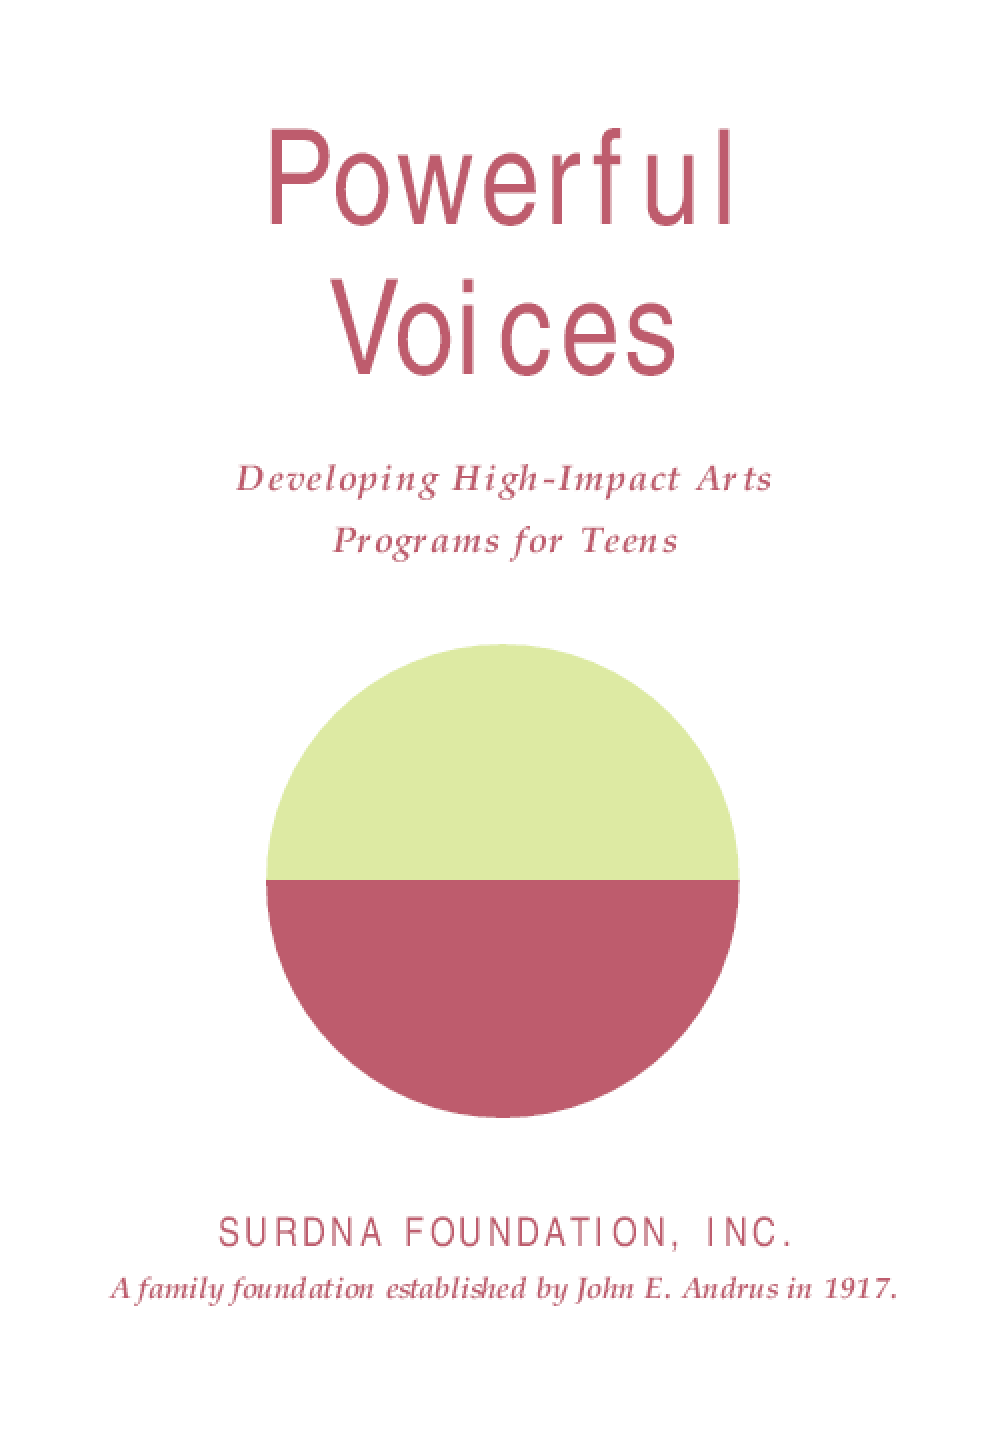 Powerful Voices: Developing High-Impact Arts Programs for Teens